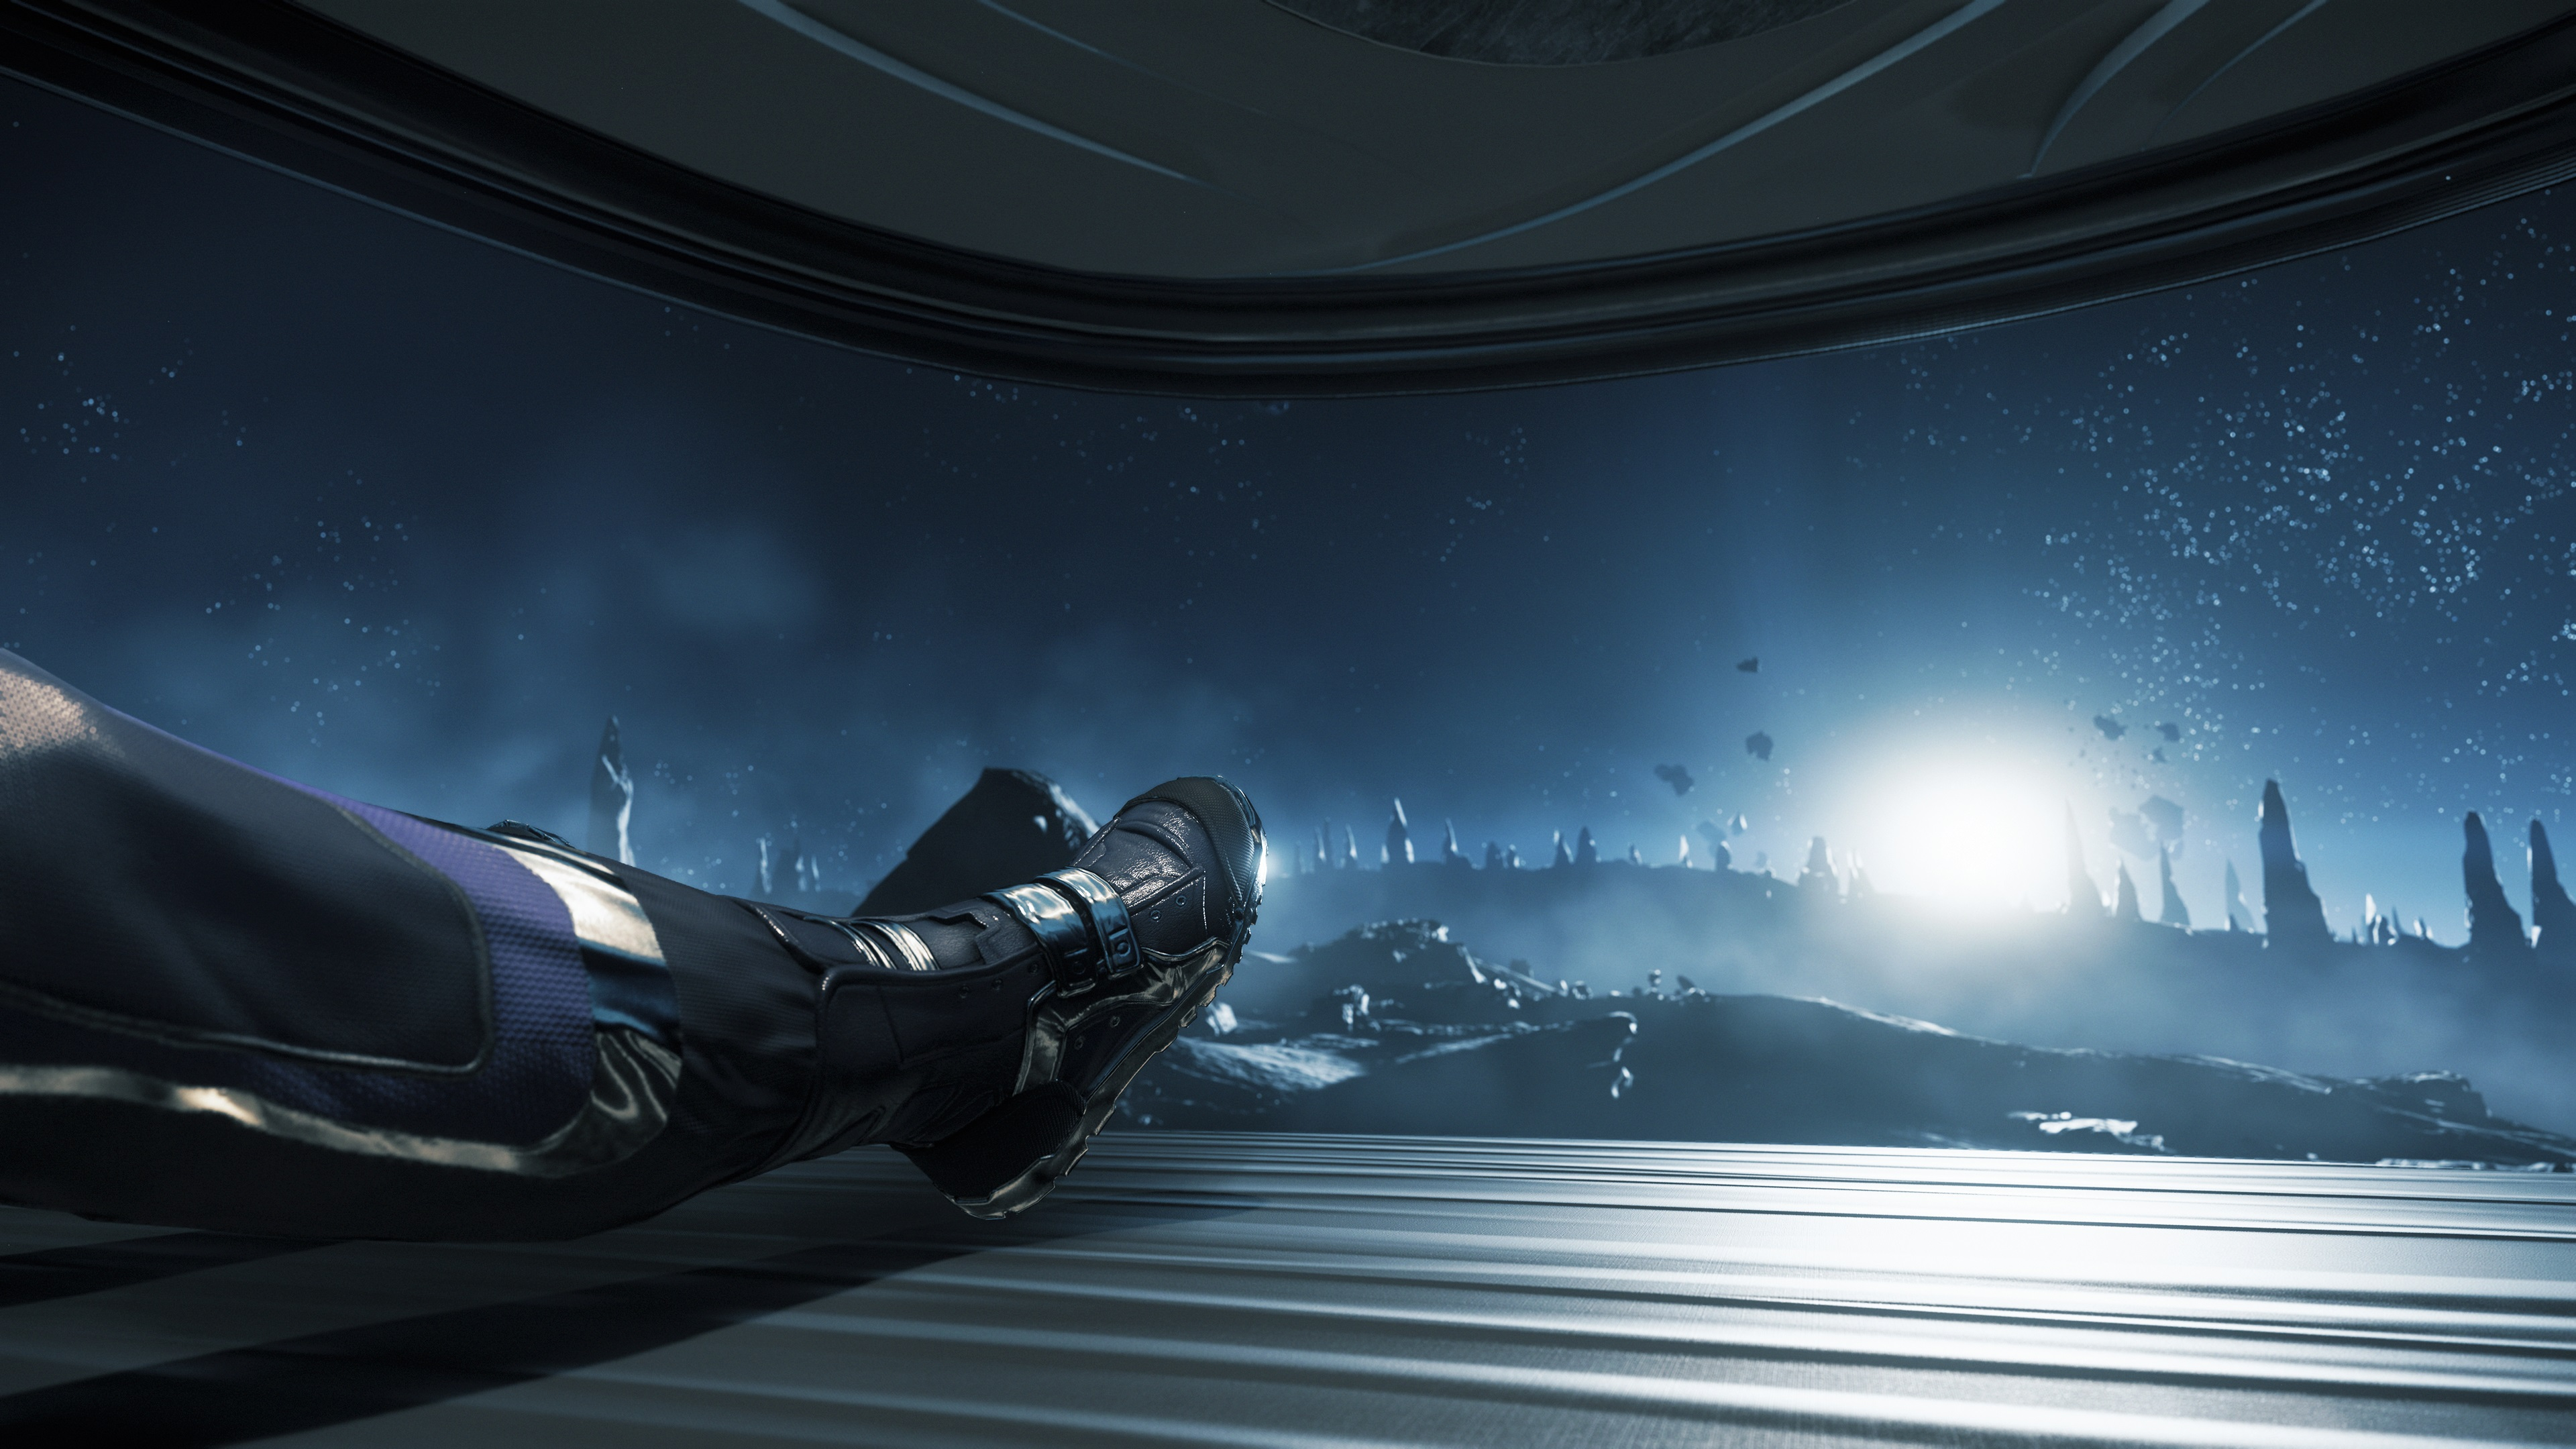 Citizen Spotlight Star Citizen And Chill Waiting For